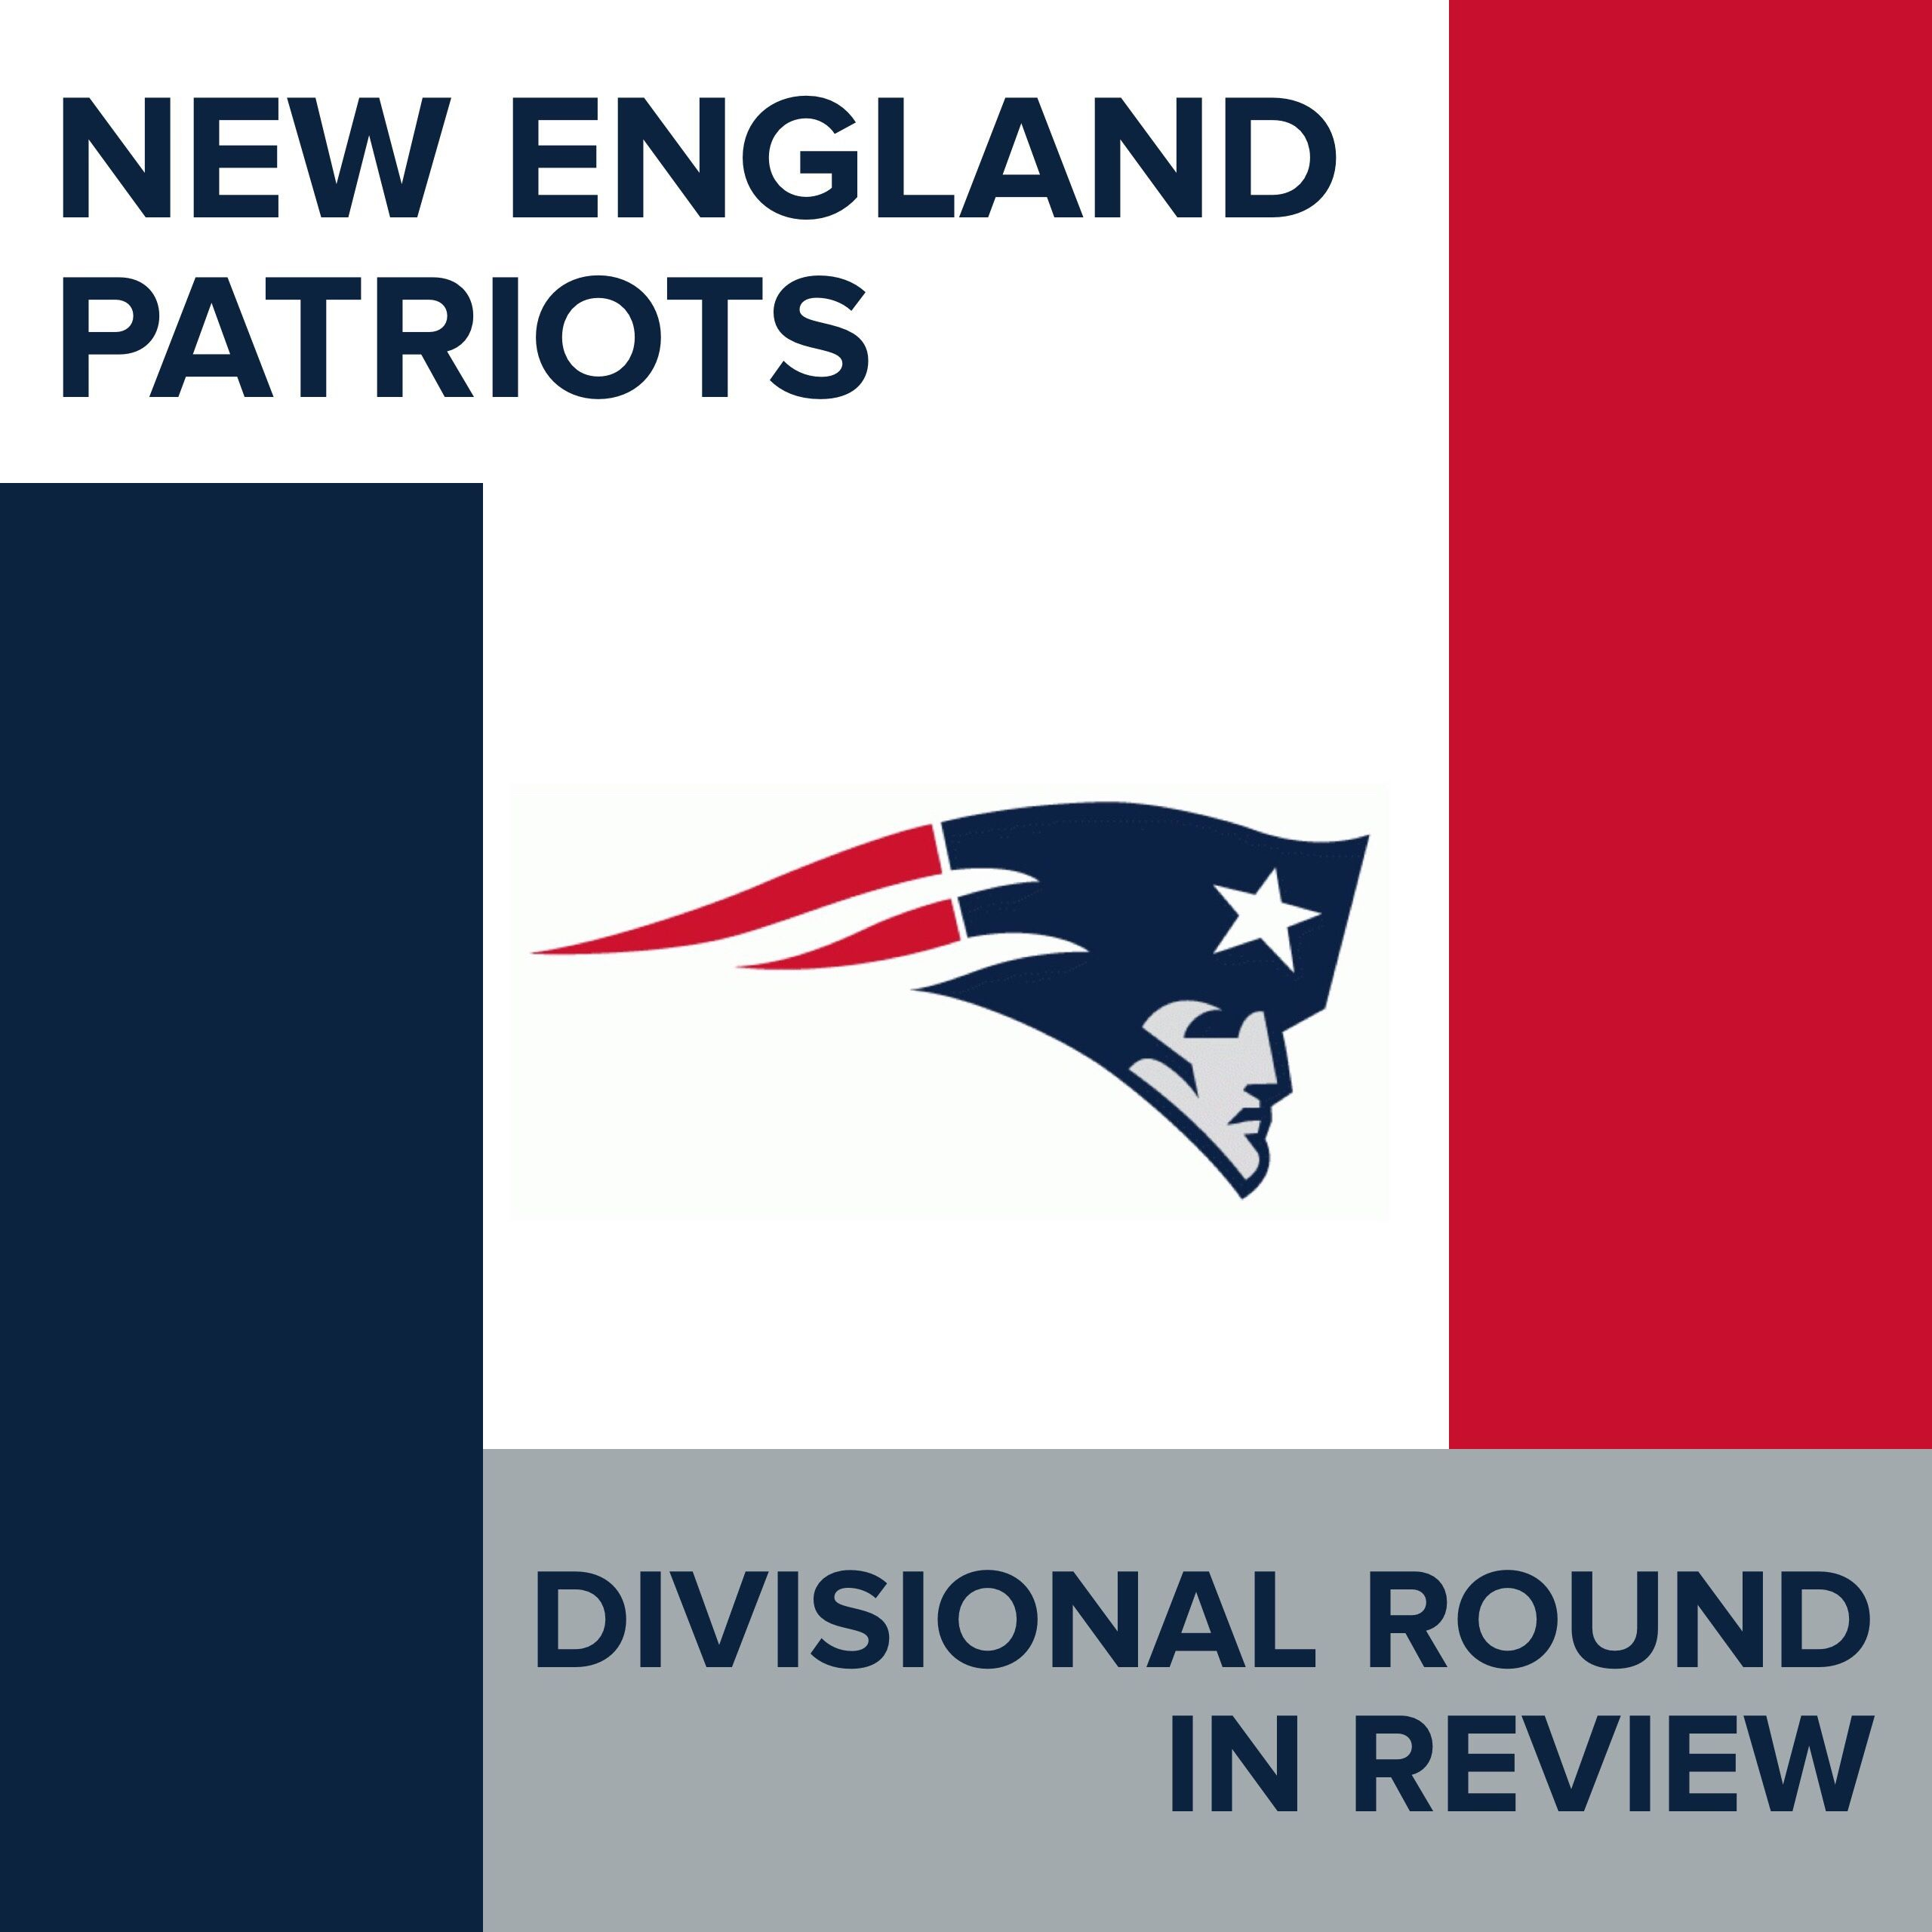 New England Patriots Divisional Round In Review Man This Jags D Scares Me Markiharrison On A Job Well Done Vs T New England Patriots Patriots New England